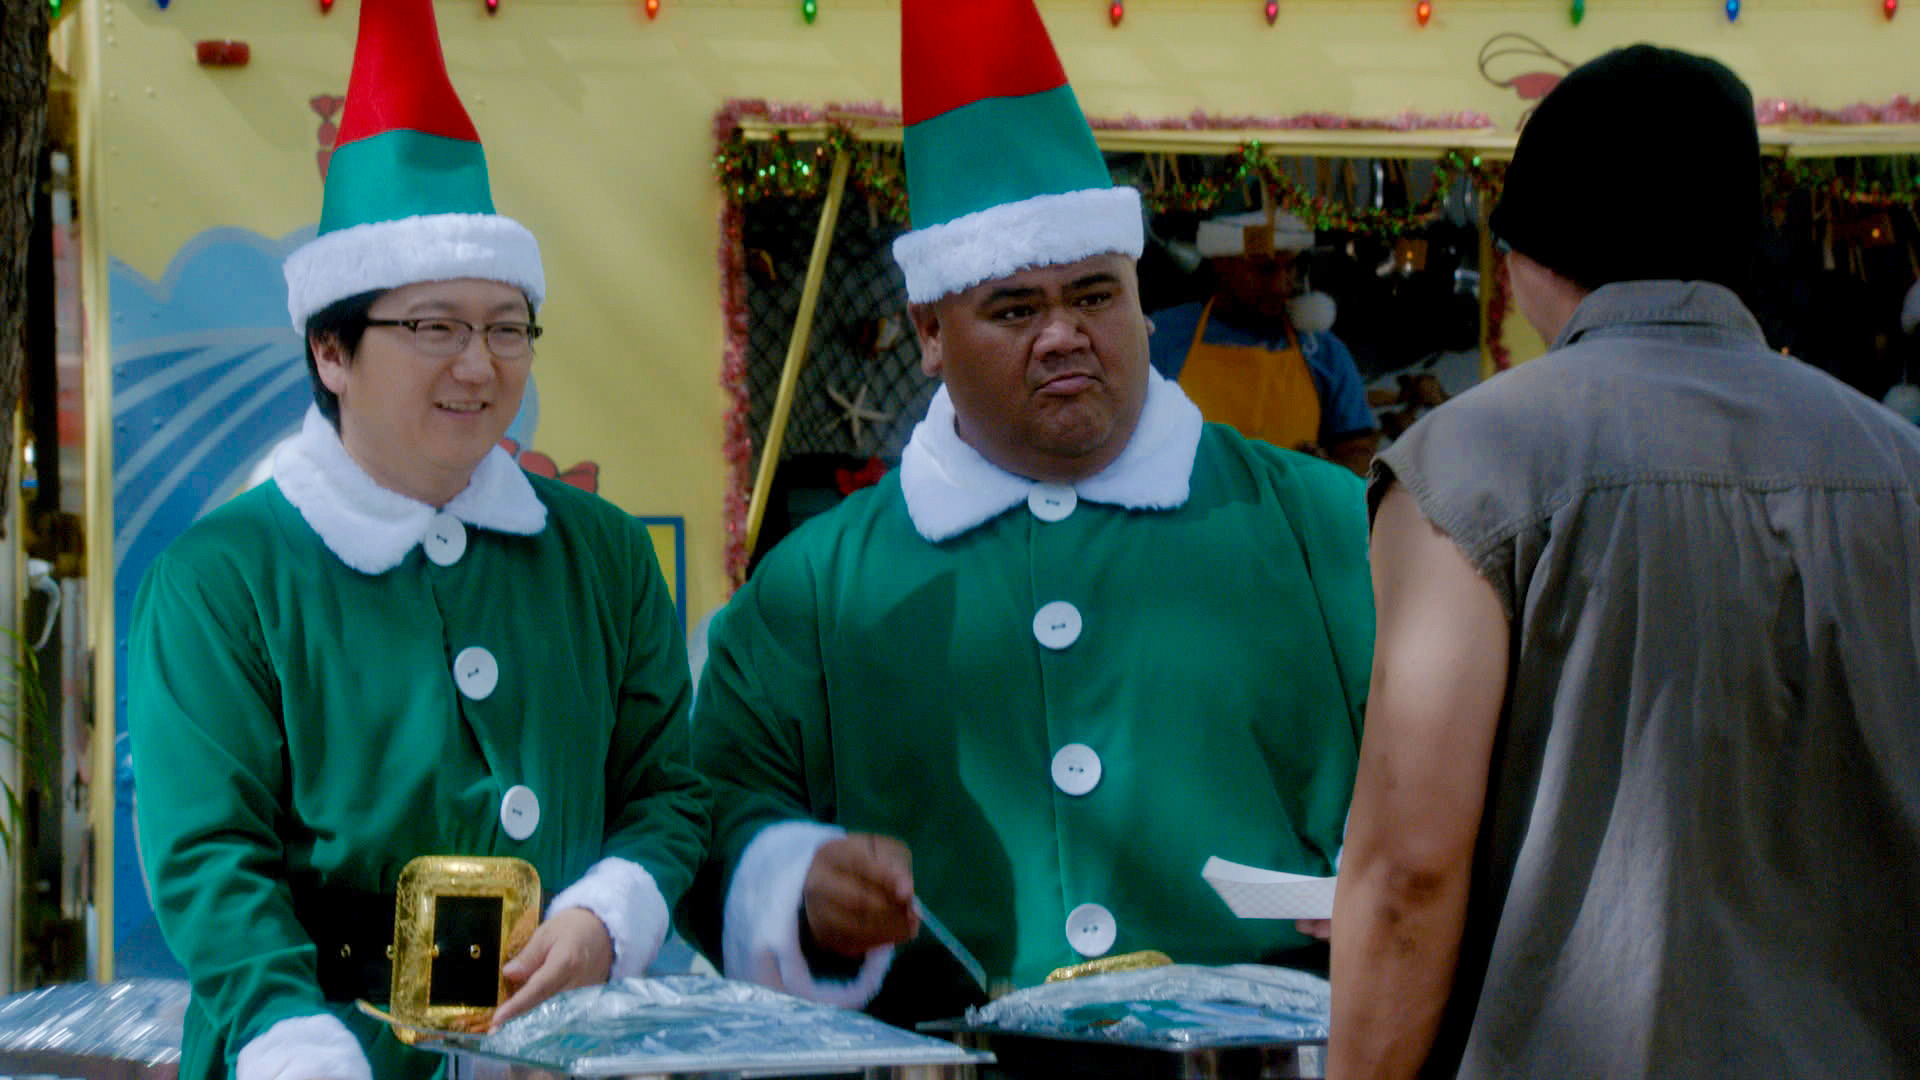 Hawaii Five-0 Christmas in Season 4 Episode 11